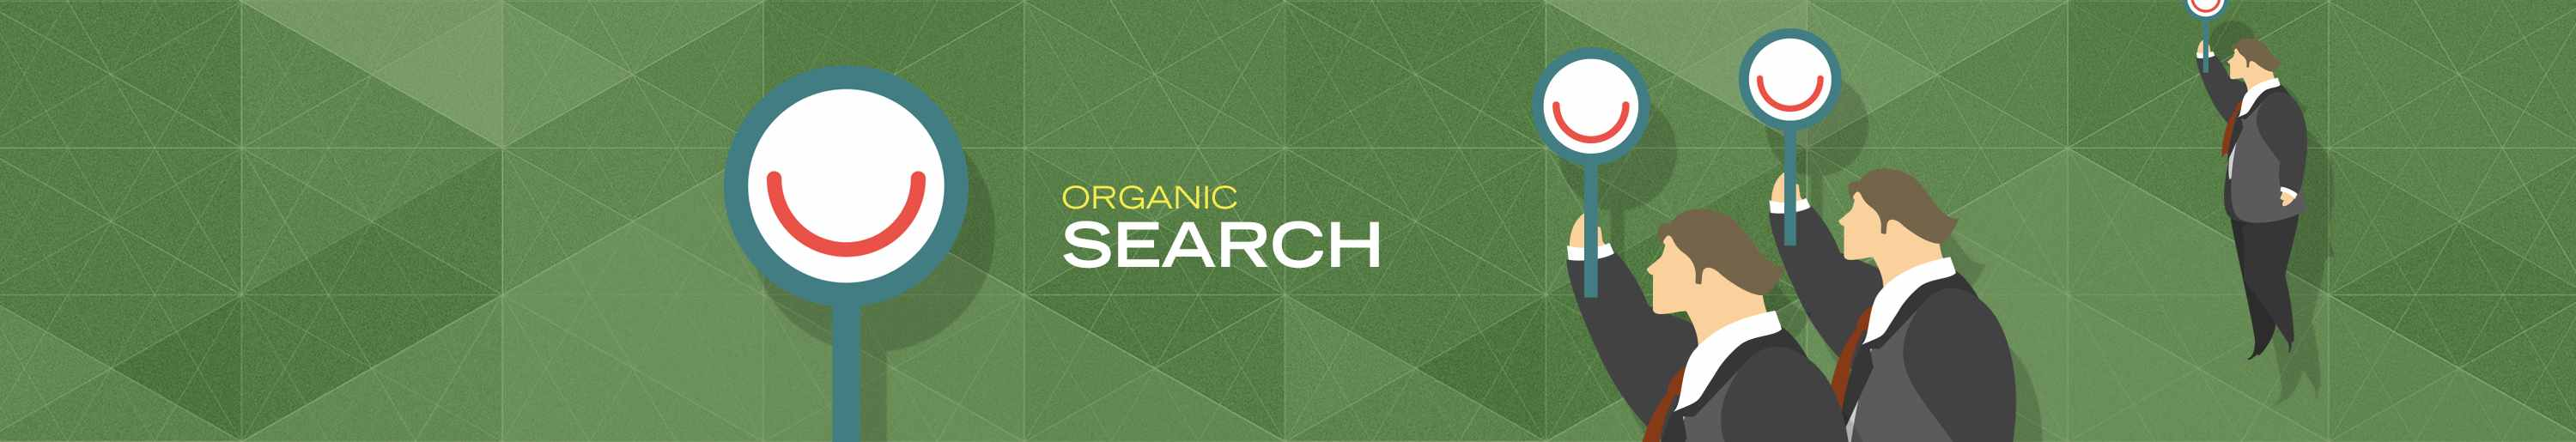 organic_search_header4